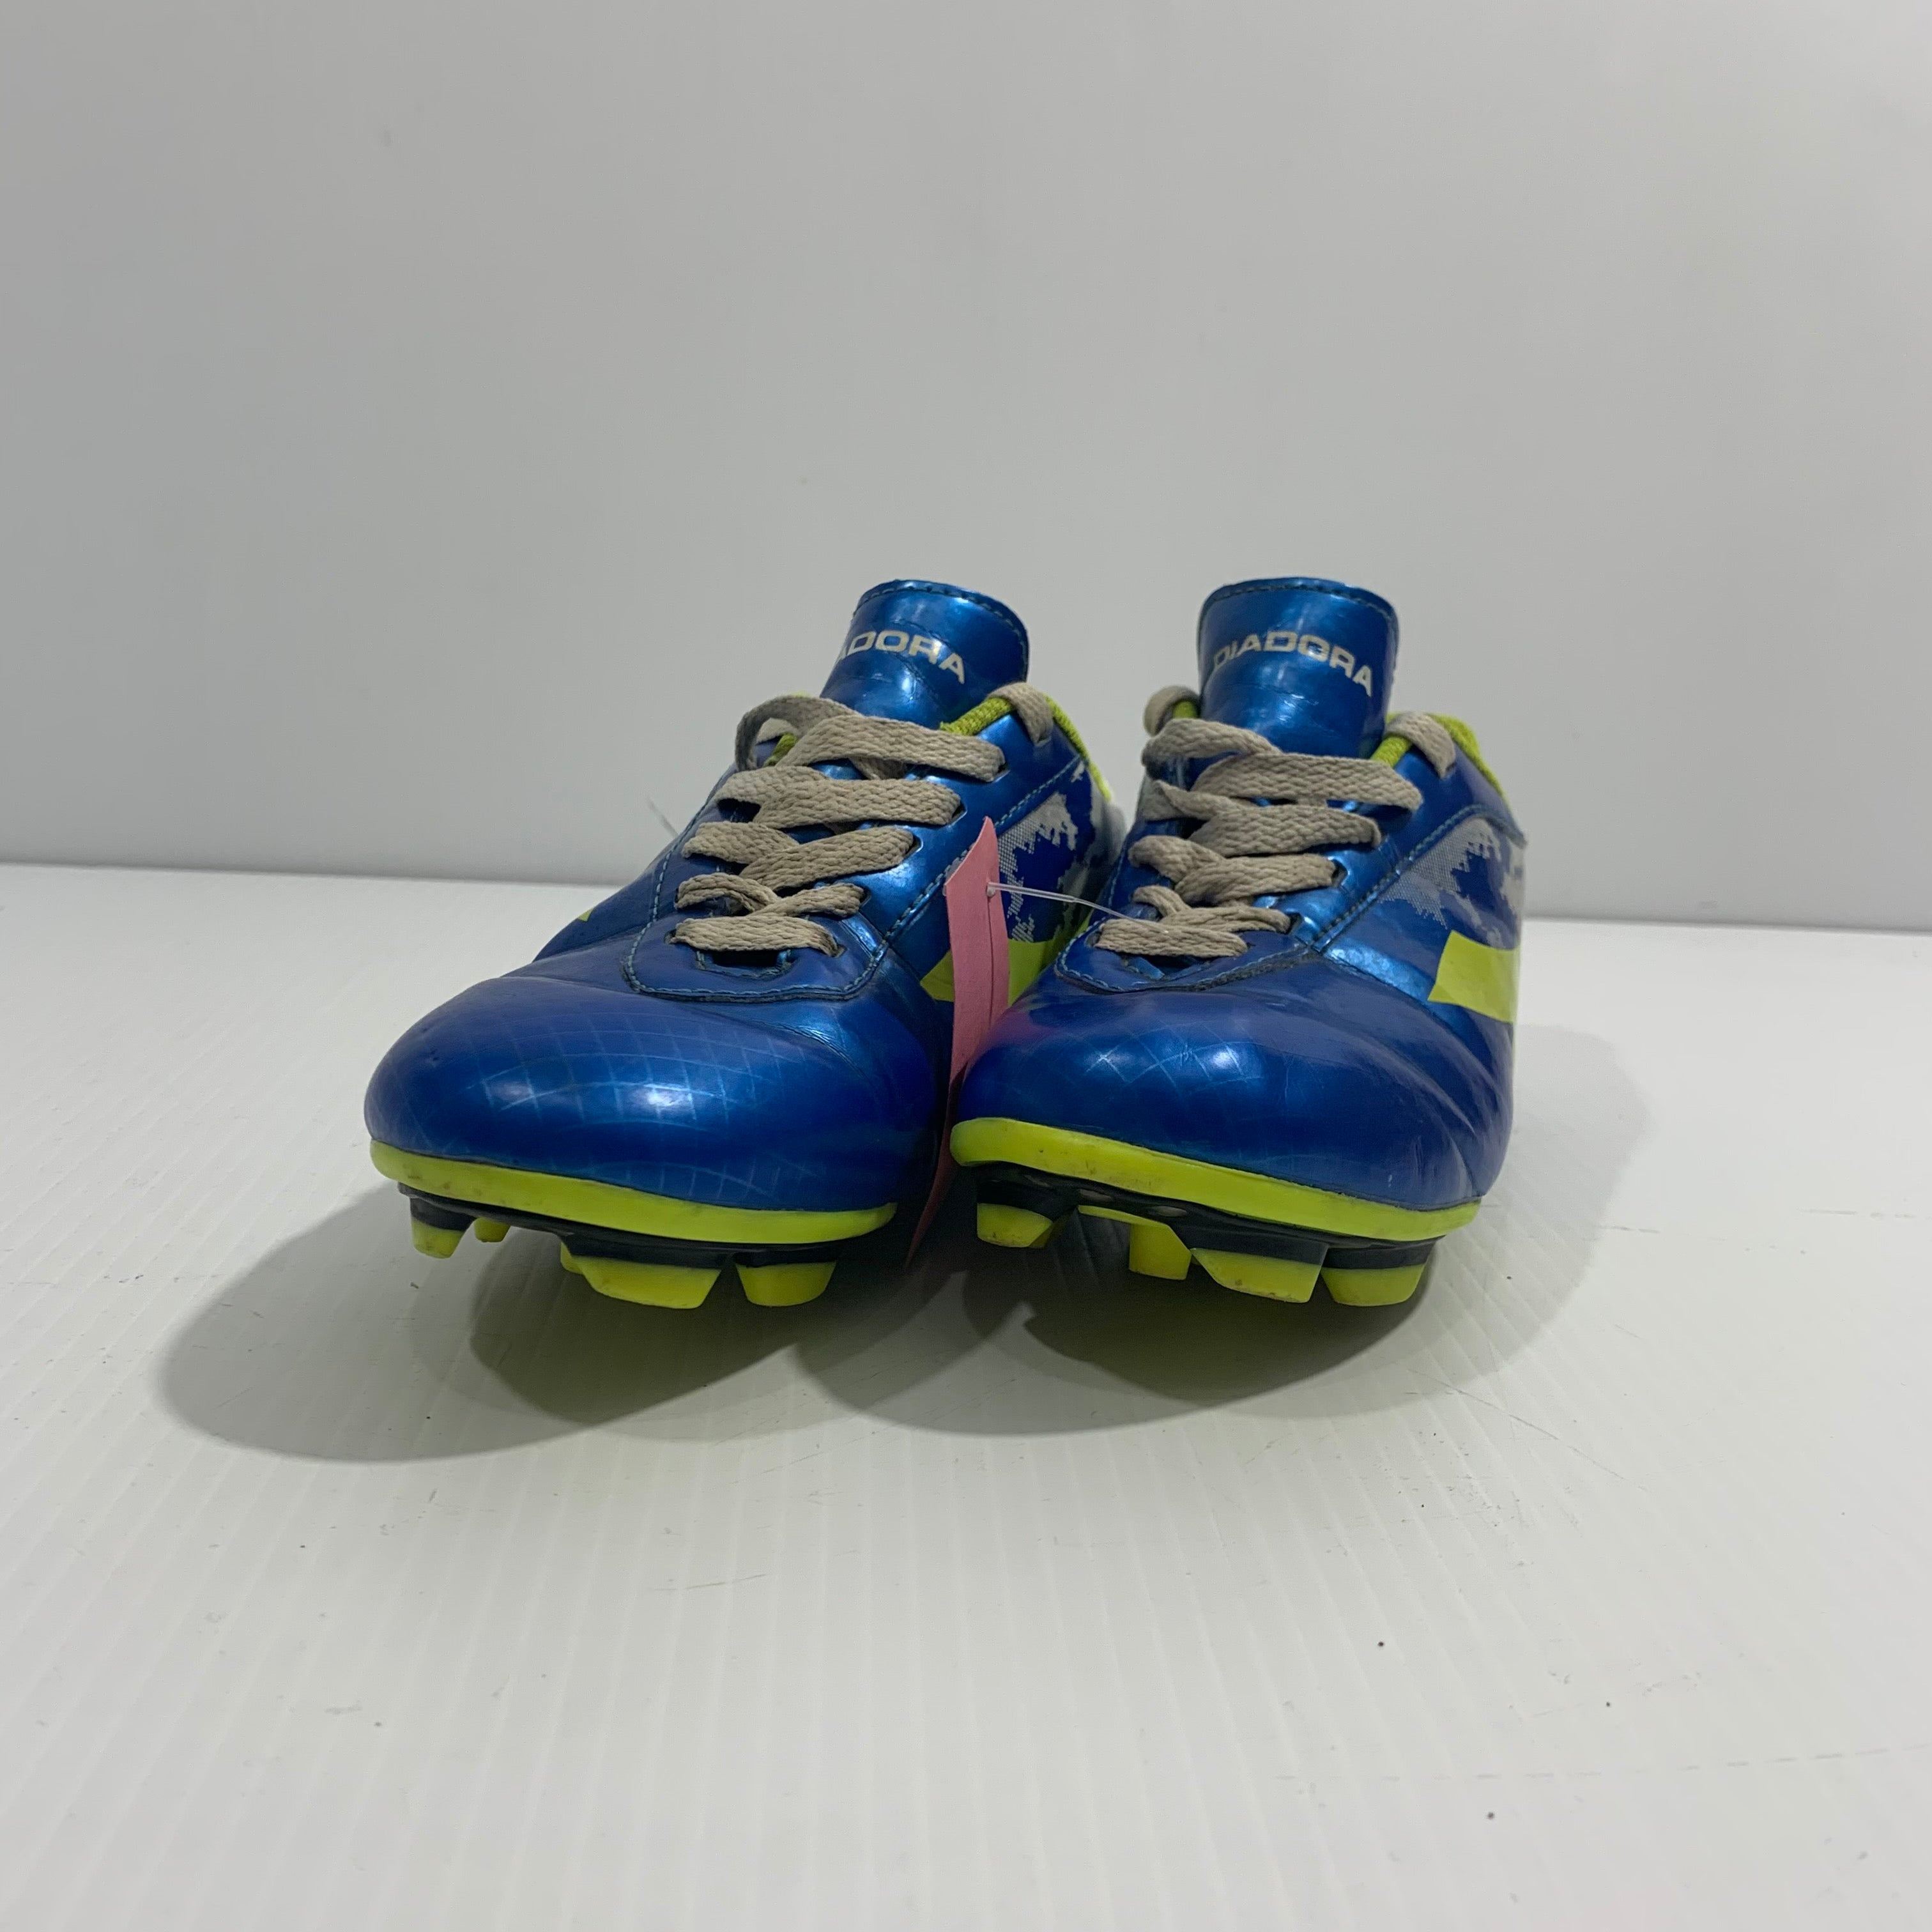 Diadora Soccer Cleats - Youth 2 - Pre-owned (X4BZ8W - B23)